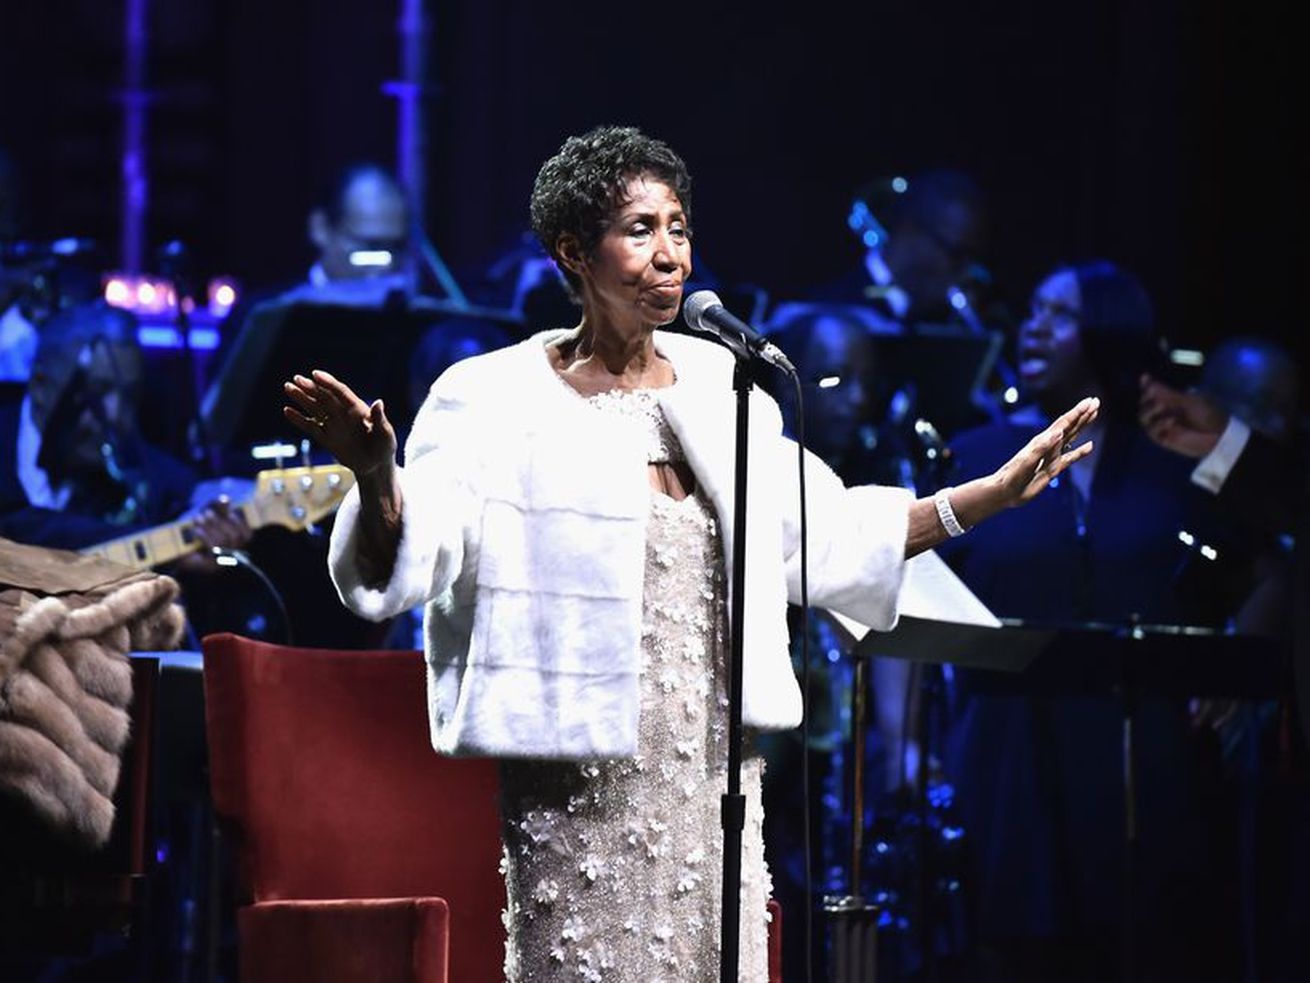 If you come for the Queen of Soul, you better not miss.